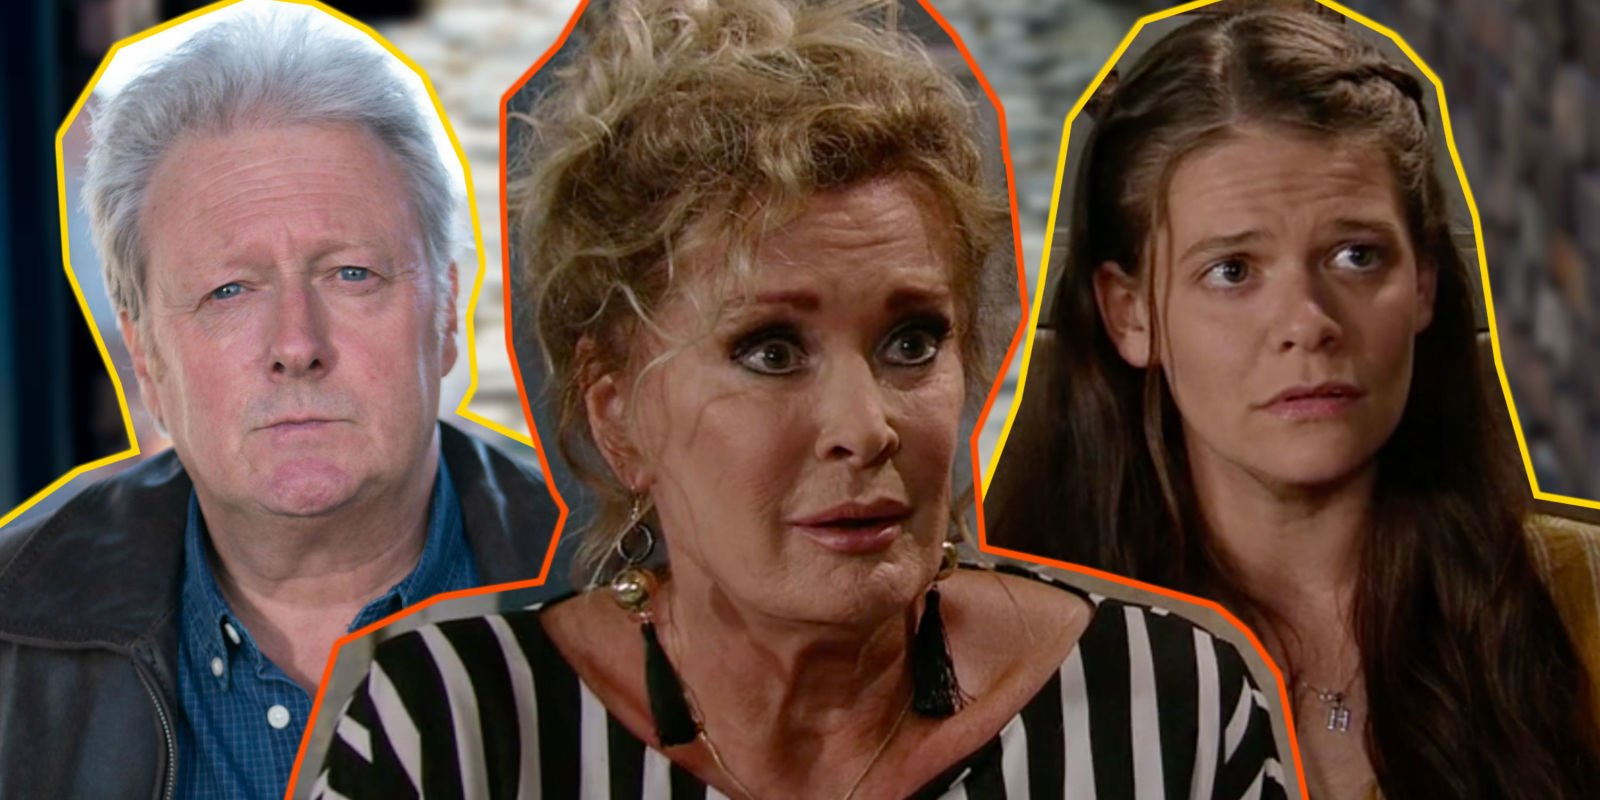 7 Coronation Street spoilers reveal what's next in Jim and Hannah's shock scam storyline